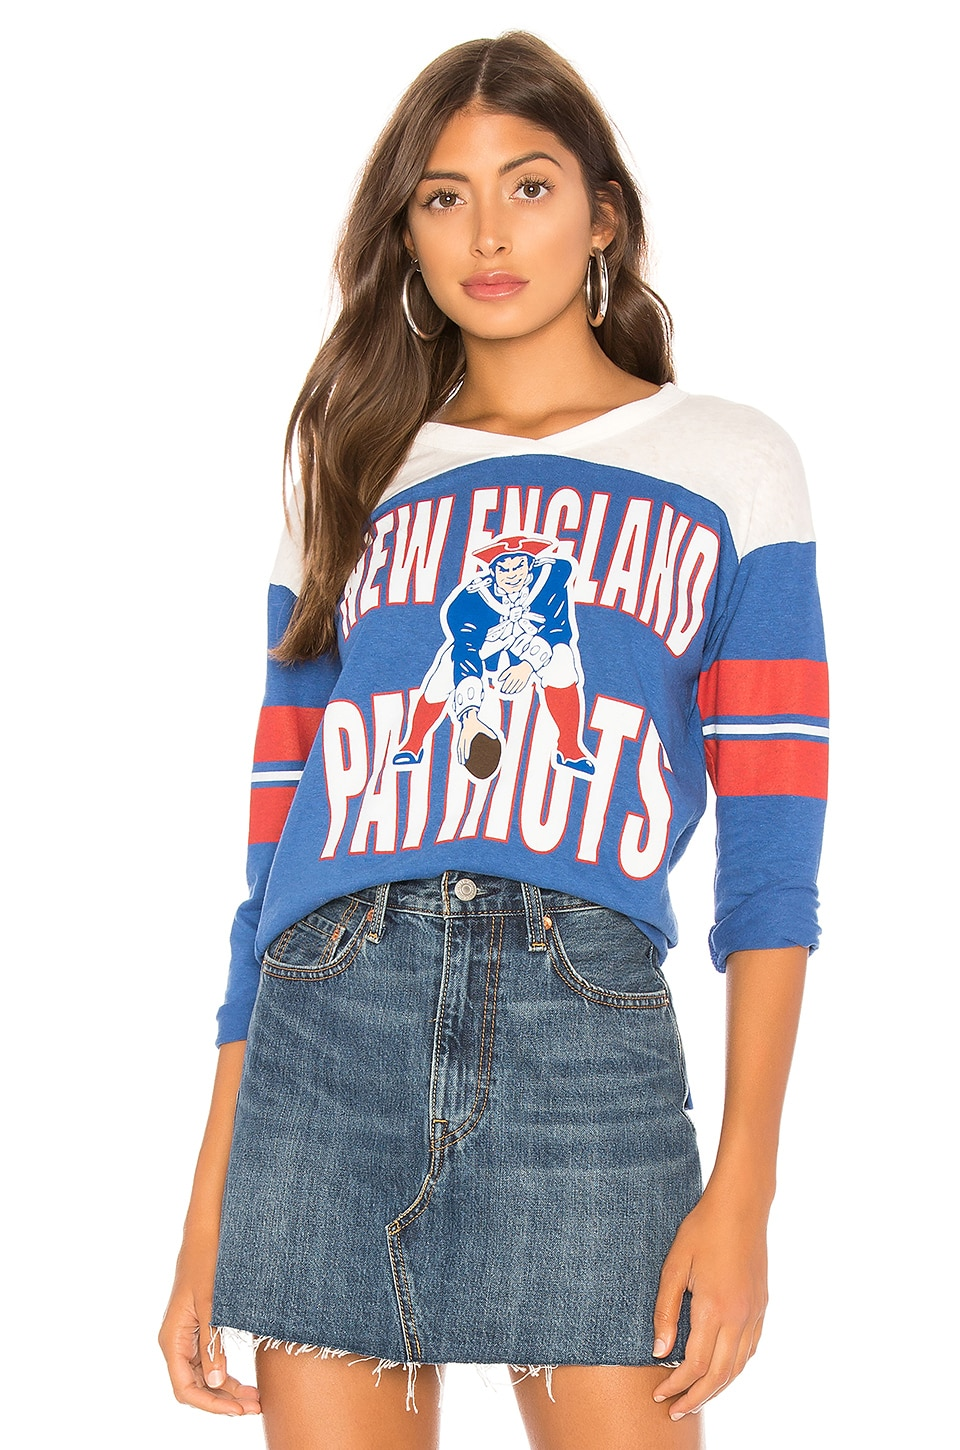 NFL Patriots Football Tee